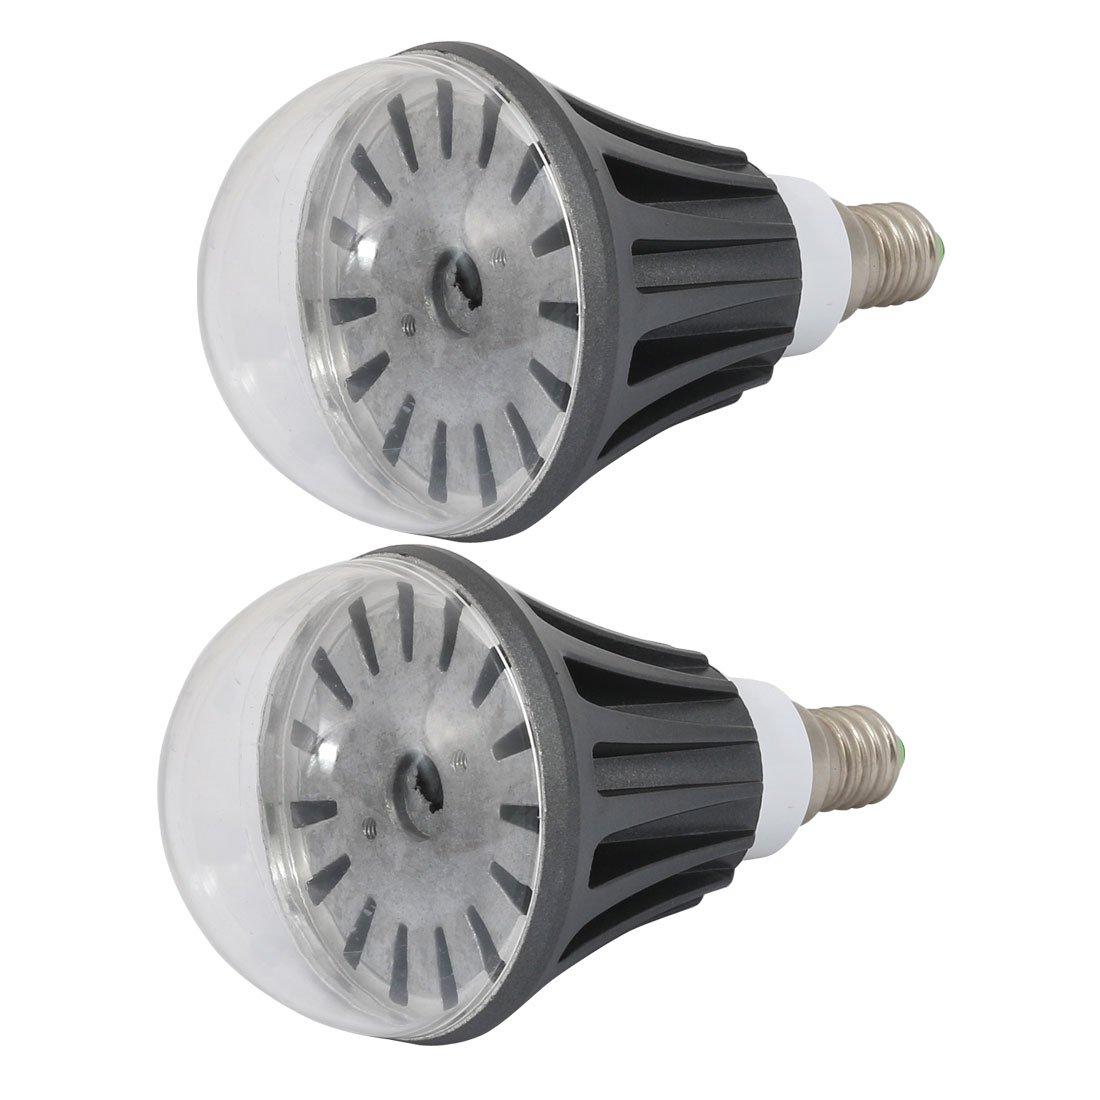 uxcell 2Pcs 5W/7W Black Aluminum Ball - Bulb Lamp Housing E14 Base w Clear Cover